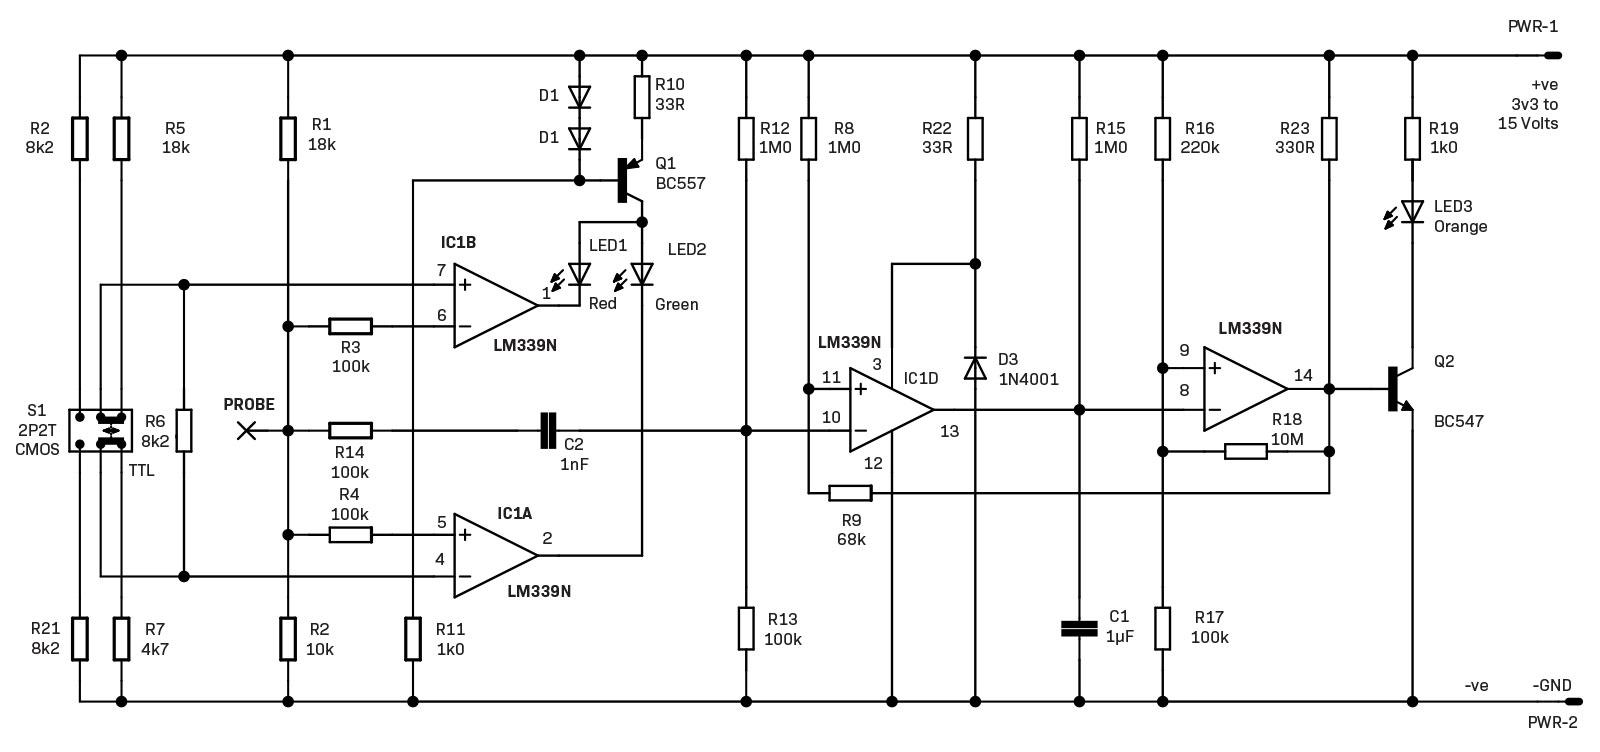 Design And Make The Ubiquitous Logic Probe Diyode Magazine Comparator Circuits Examples Tutorial Circuit Of Its Lm339 Quad Core